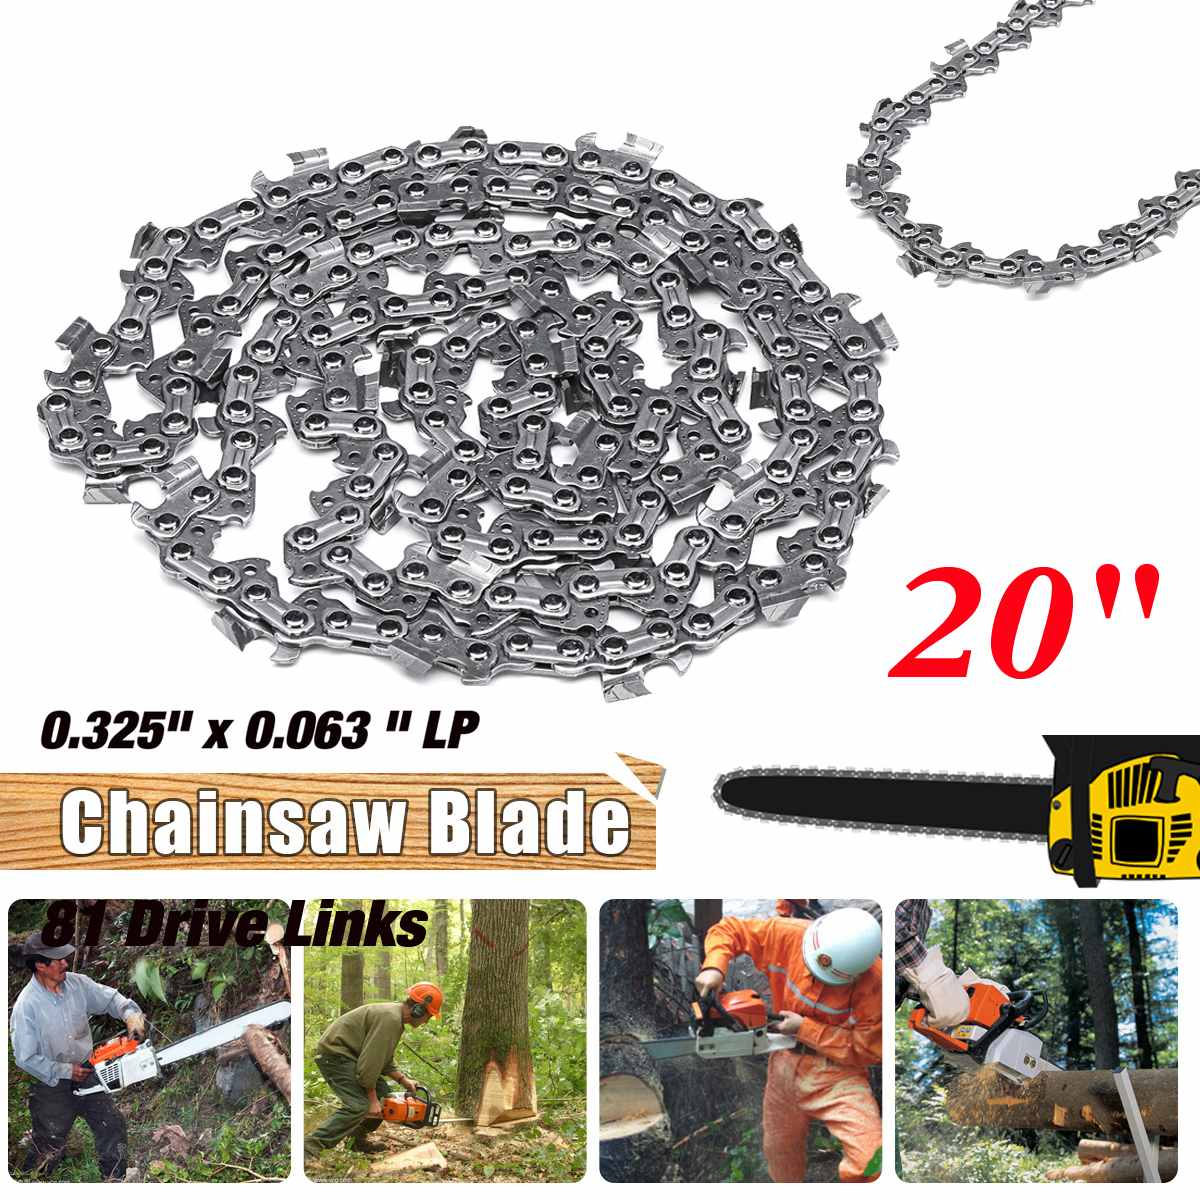 New 81 Link 20 inch Bar 0.063 x 0.325 LP Chainsaw Chain Woodworking Alloy Garden Chains Saws Power Tool PartsNew 81 Link 20 inch Bar 0.063 x 0.325 LP Chainsaw Chain Woodworking Alloy Garden Chains Saws Power Tool Parts